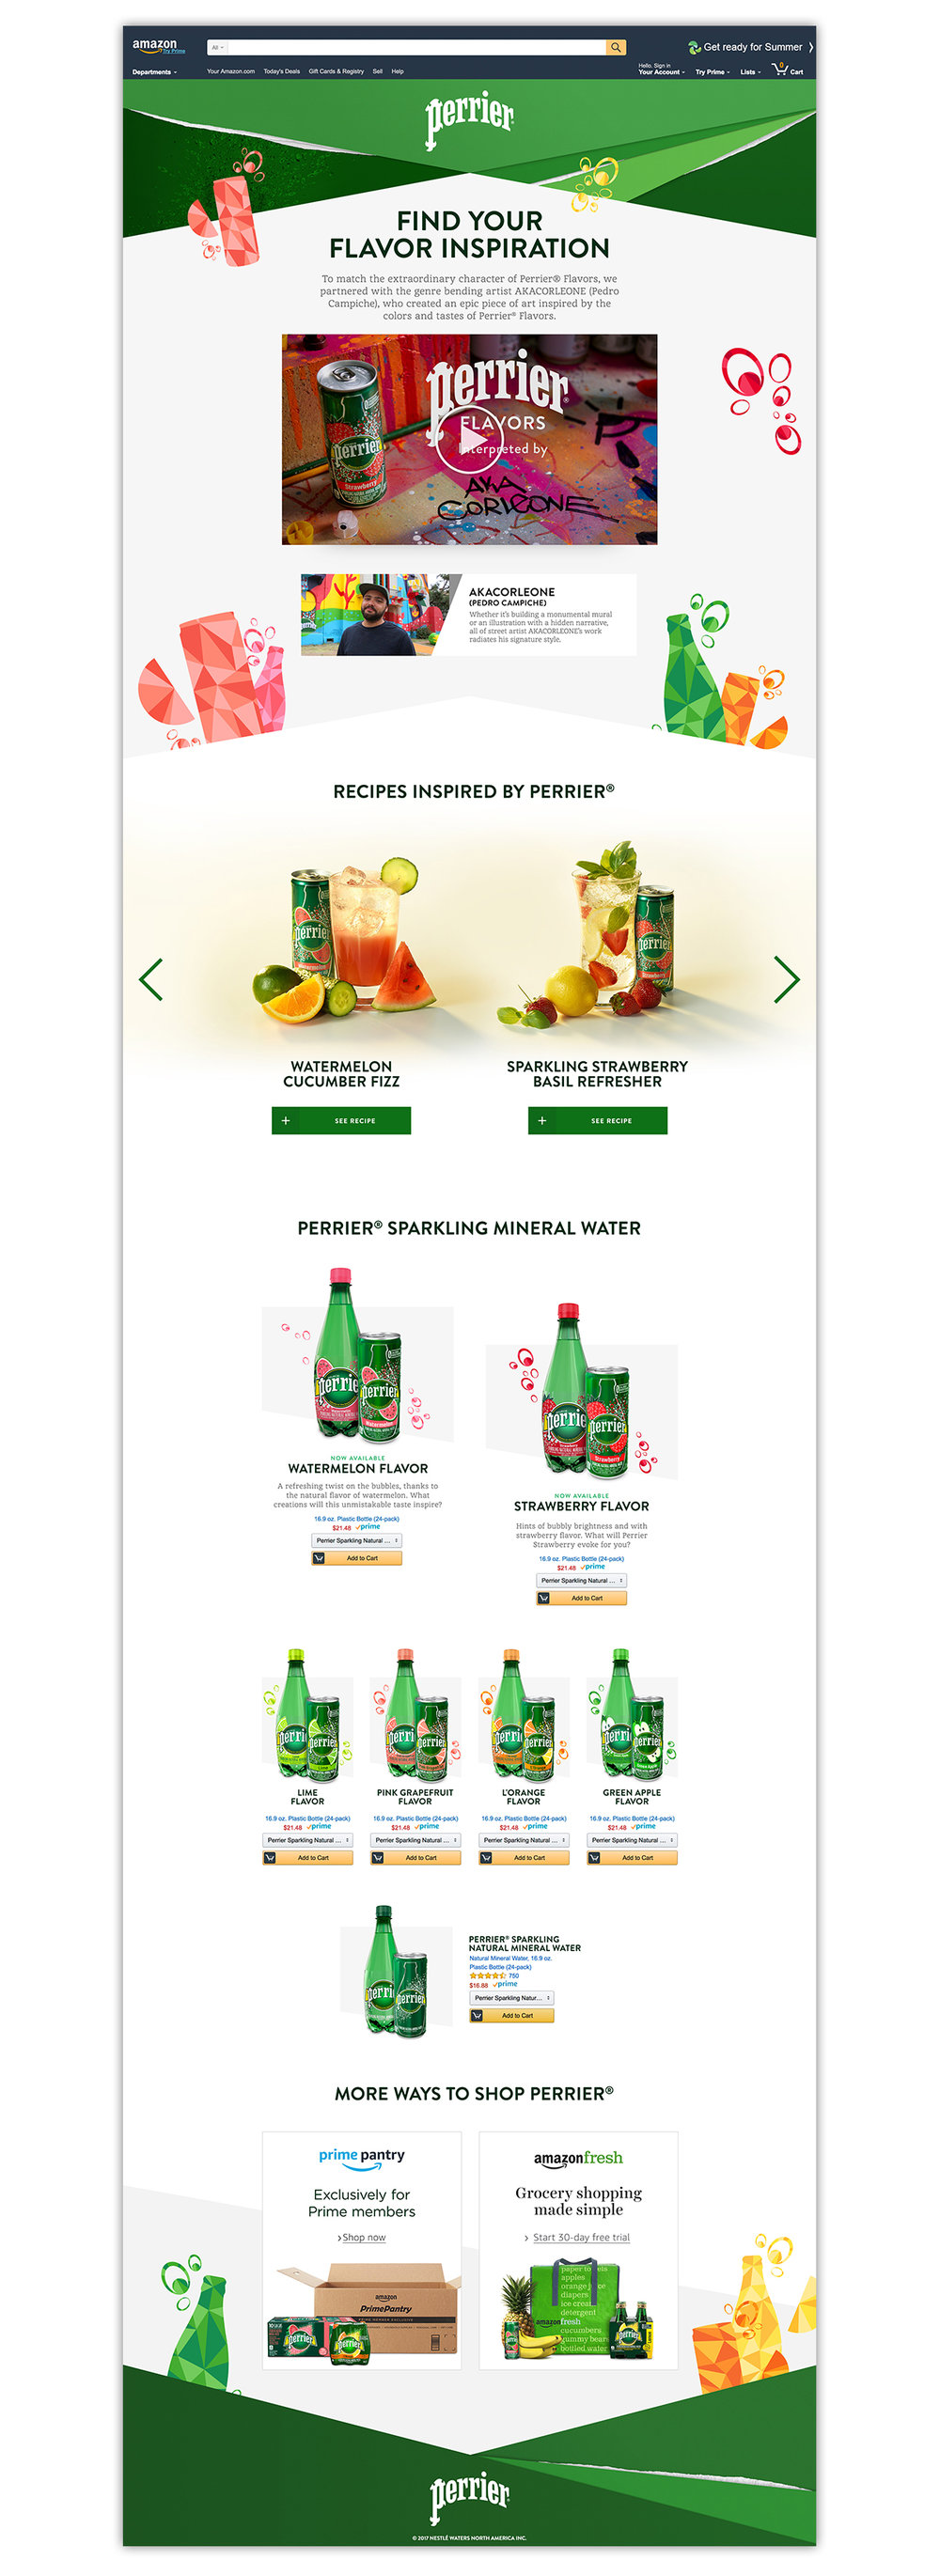 Perrier Custom Campaign Landing Page, Digital, 3000px x11208 px